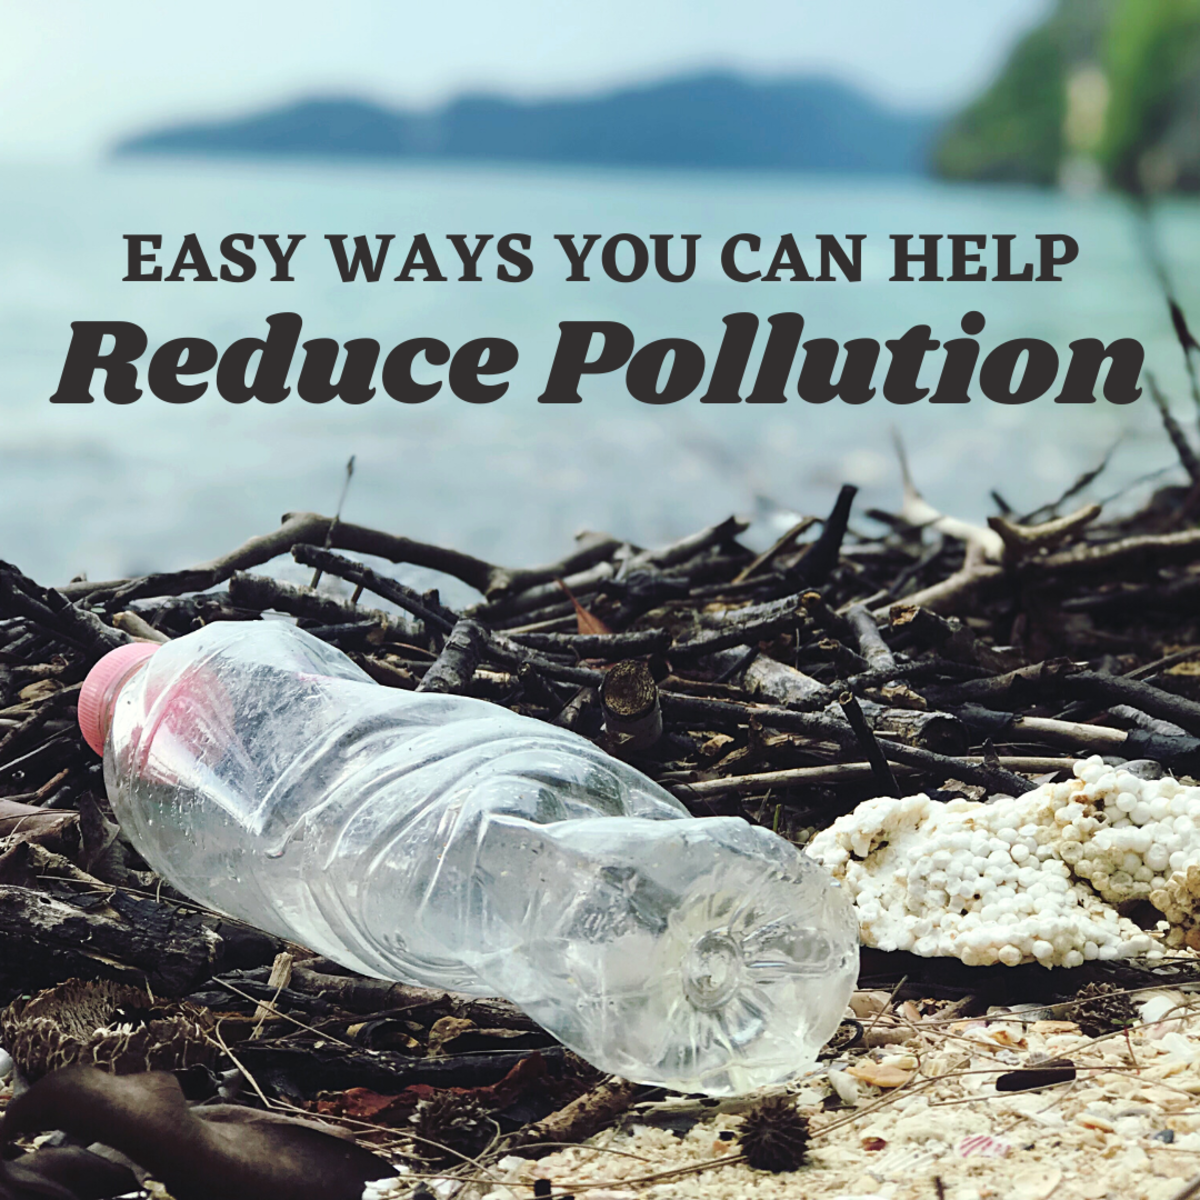 Five ways you can help reduce pollution